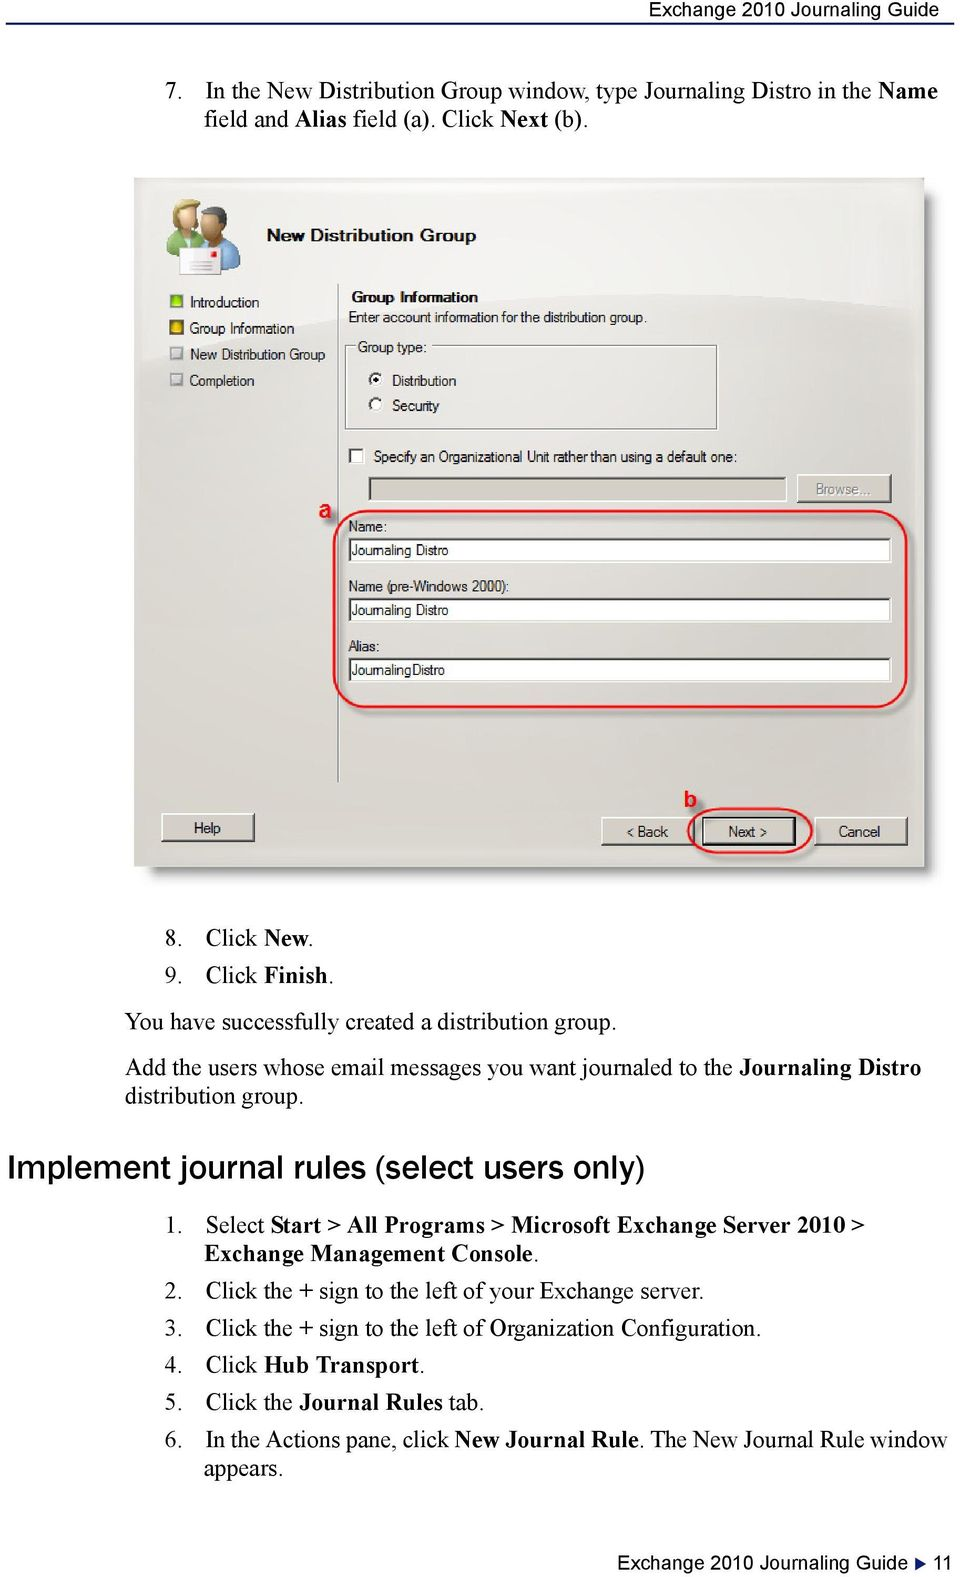 Implement journal rules (select users only) 1. Select Start > All Programs > Microsoft Exchange Server 2010 > Exchange Management Console. 2. Click the + sign to the left of your Exchange server.